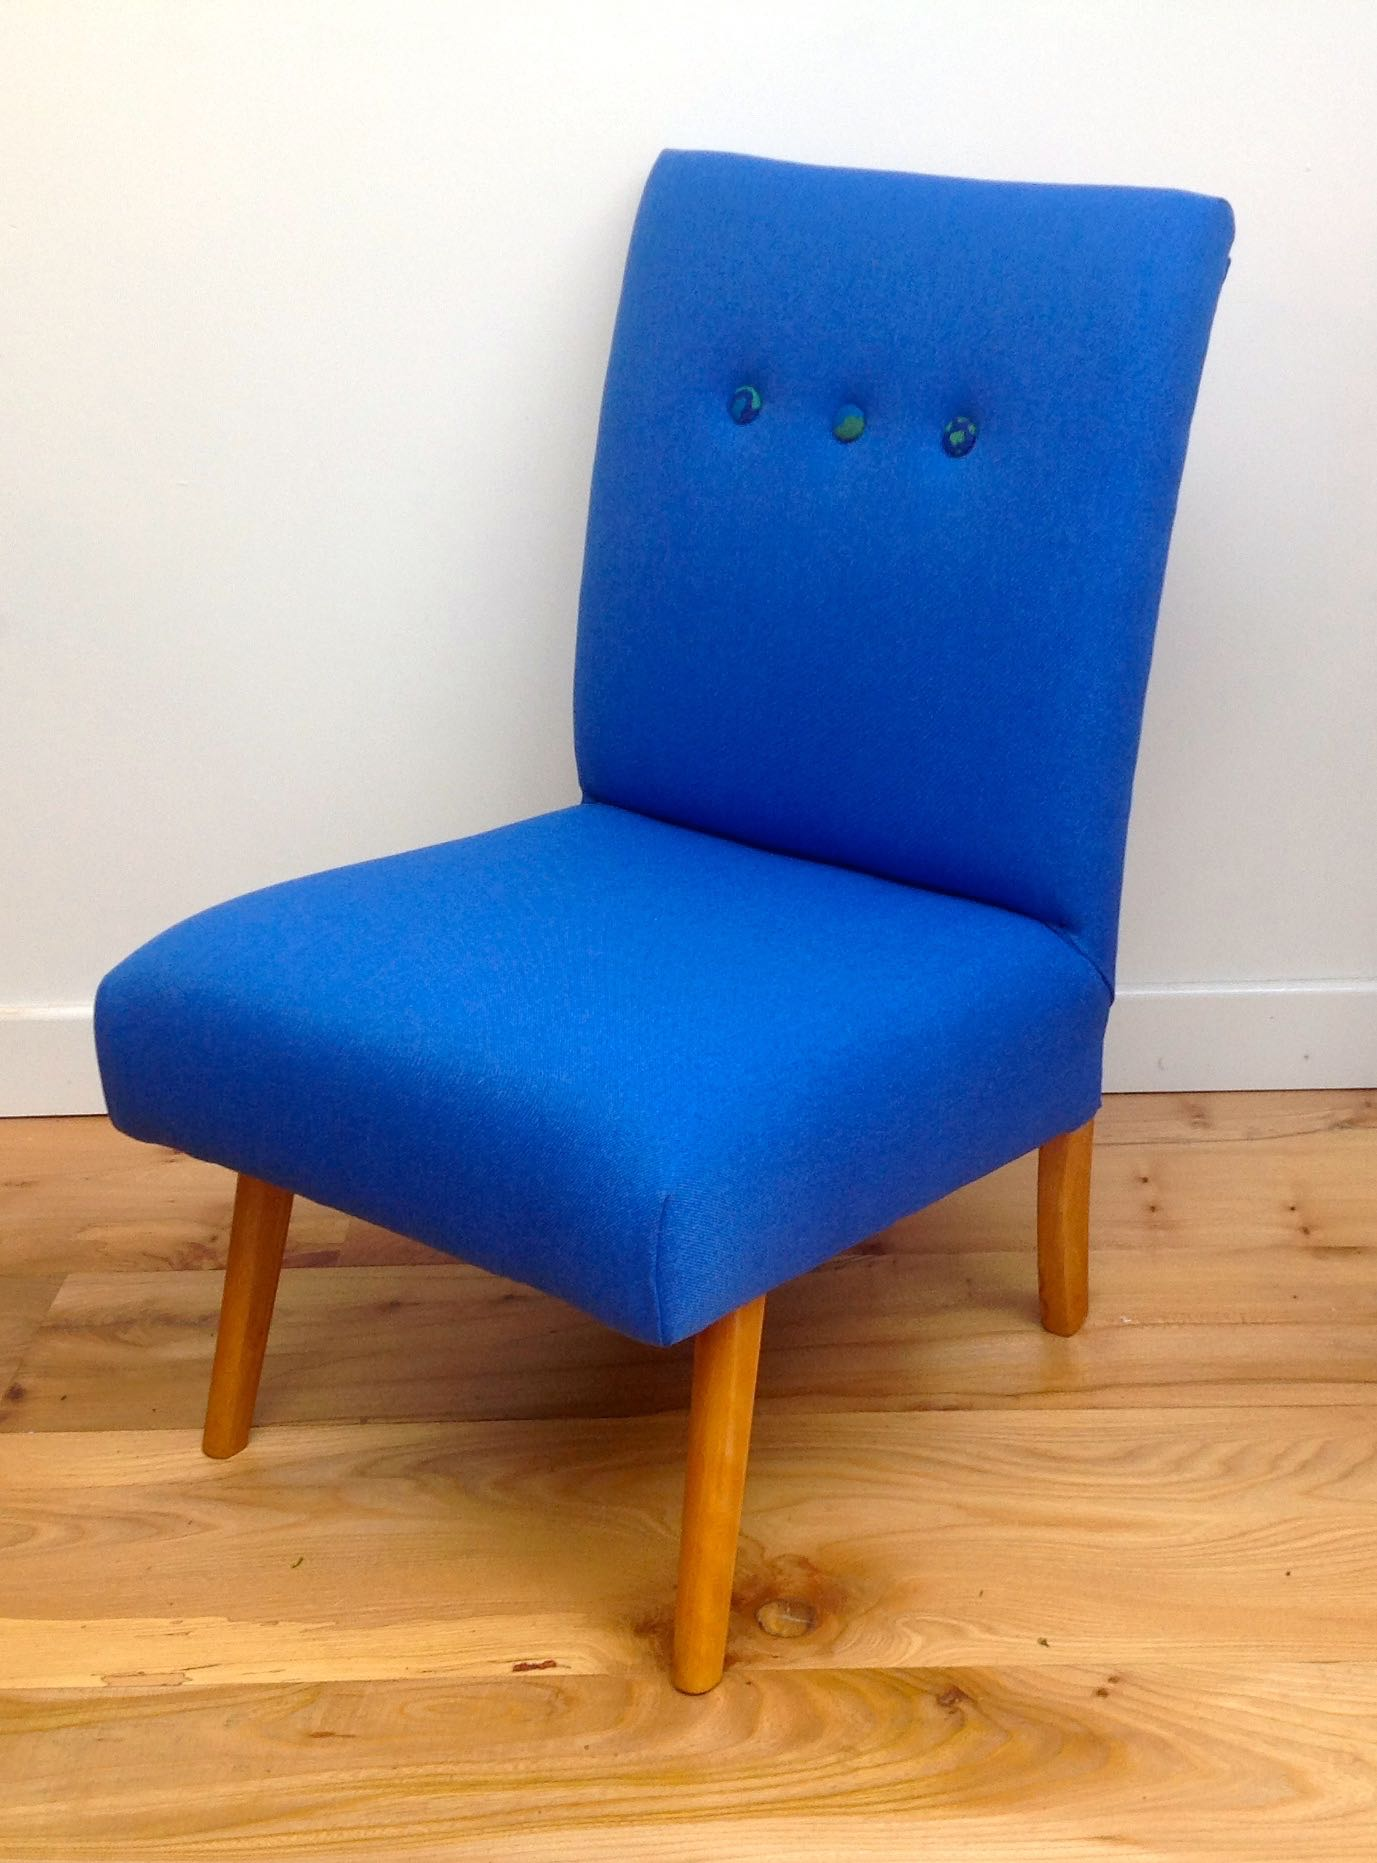 vintage 1960s occasional chair maud chairsmaud chairs. Black Bedroom Furniture Sets. Home Design Ideas